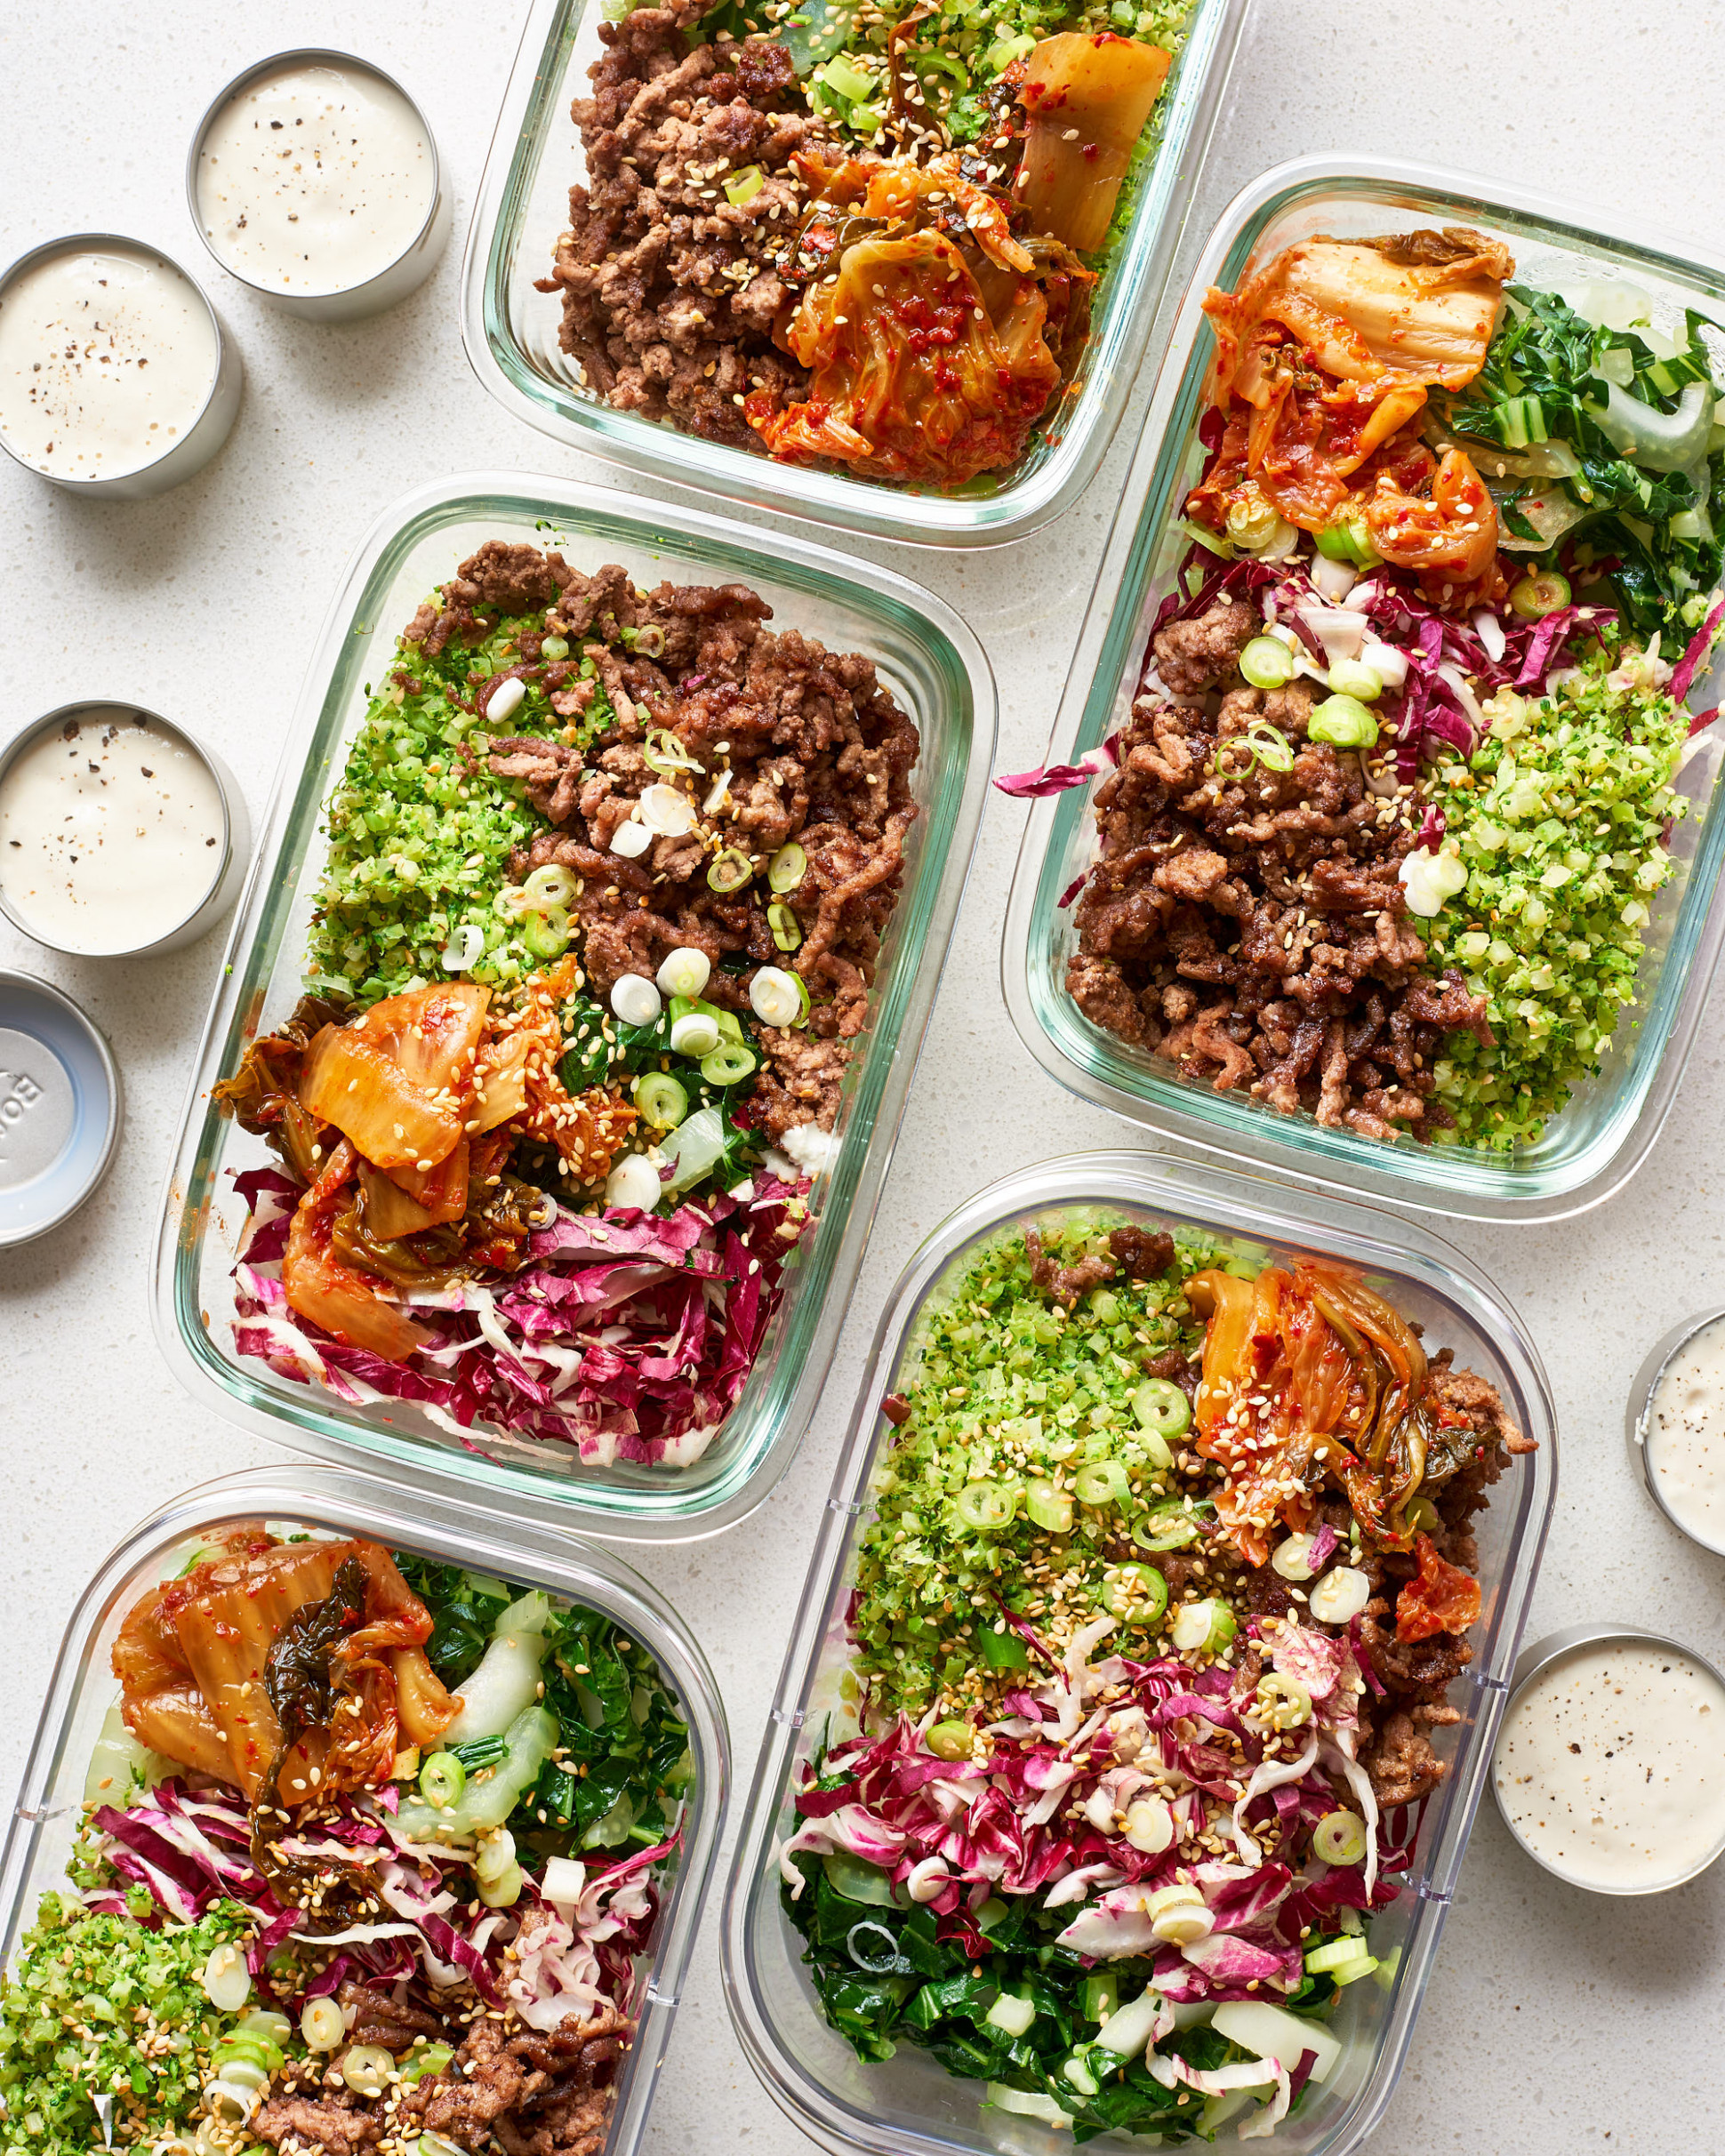 Low-Carb Meal Prep: A Week of Meals | Kitchn - dinner recipes high in fiber